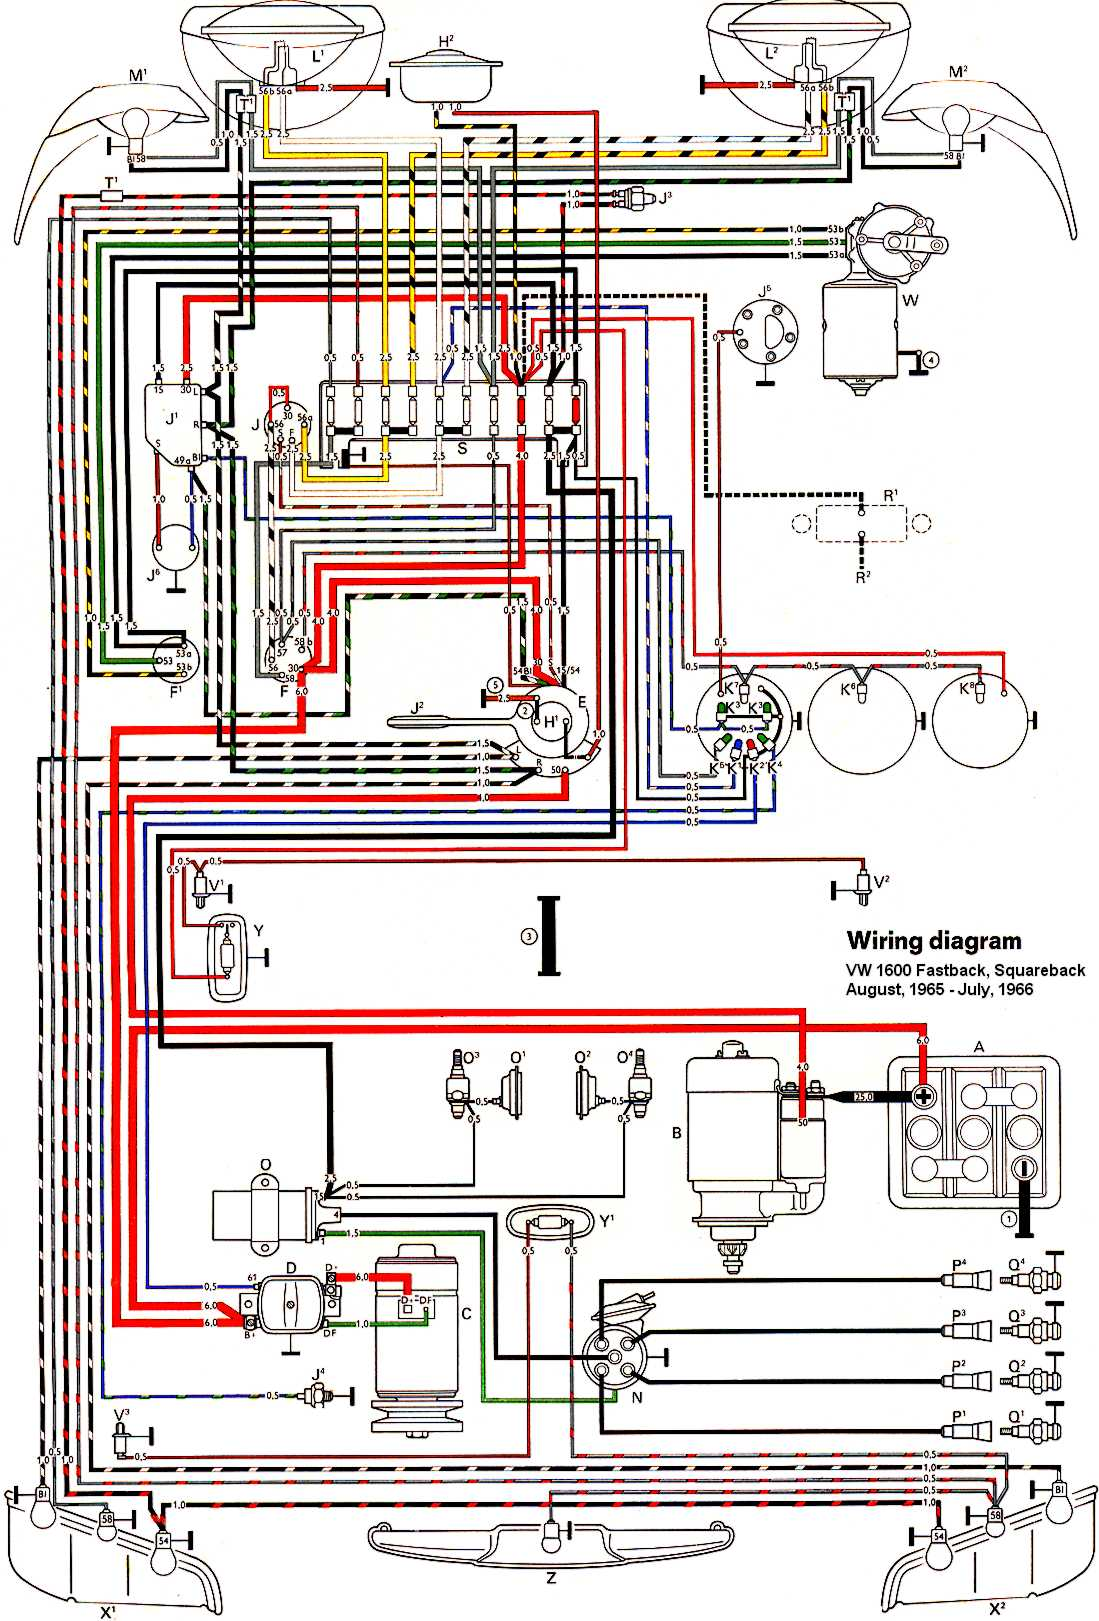 type3_1600_66 vw bus wiring diagram 1965 vw bus wiring diagram \u2022 wiring diagrams vw thing wiring diagram at nearapp.co